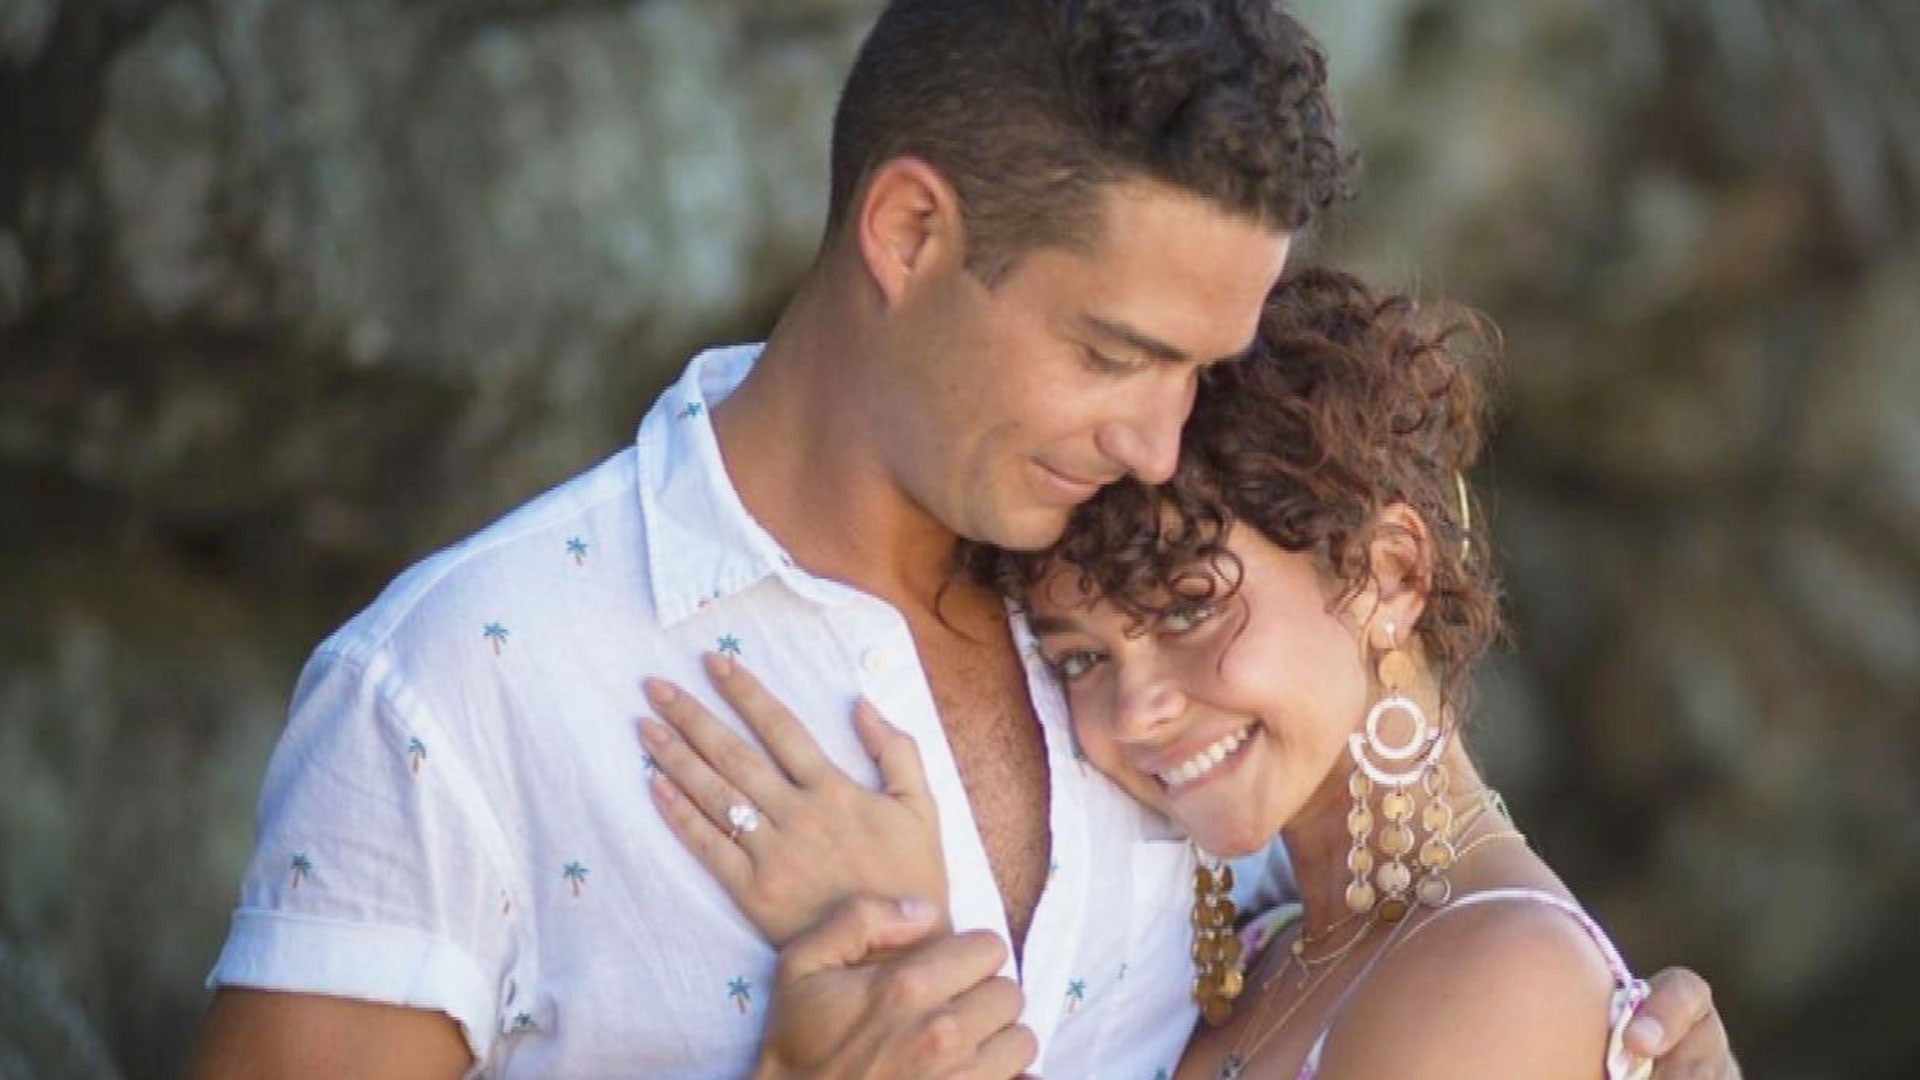 Sarah Hyland and Wells Adams Engaged! Everything They've Said About Their Romance